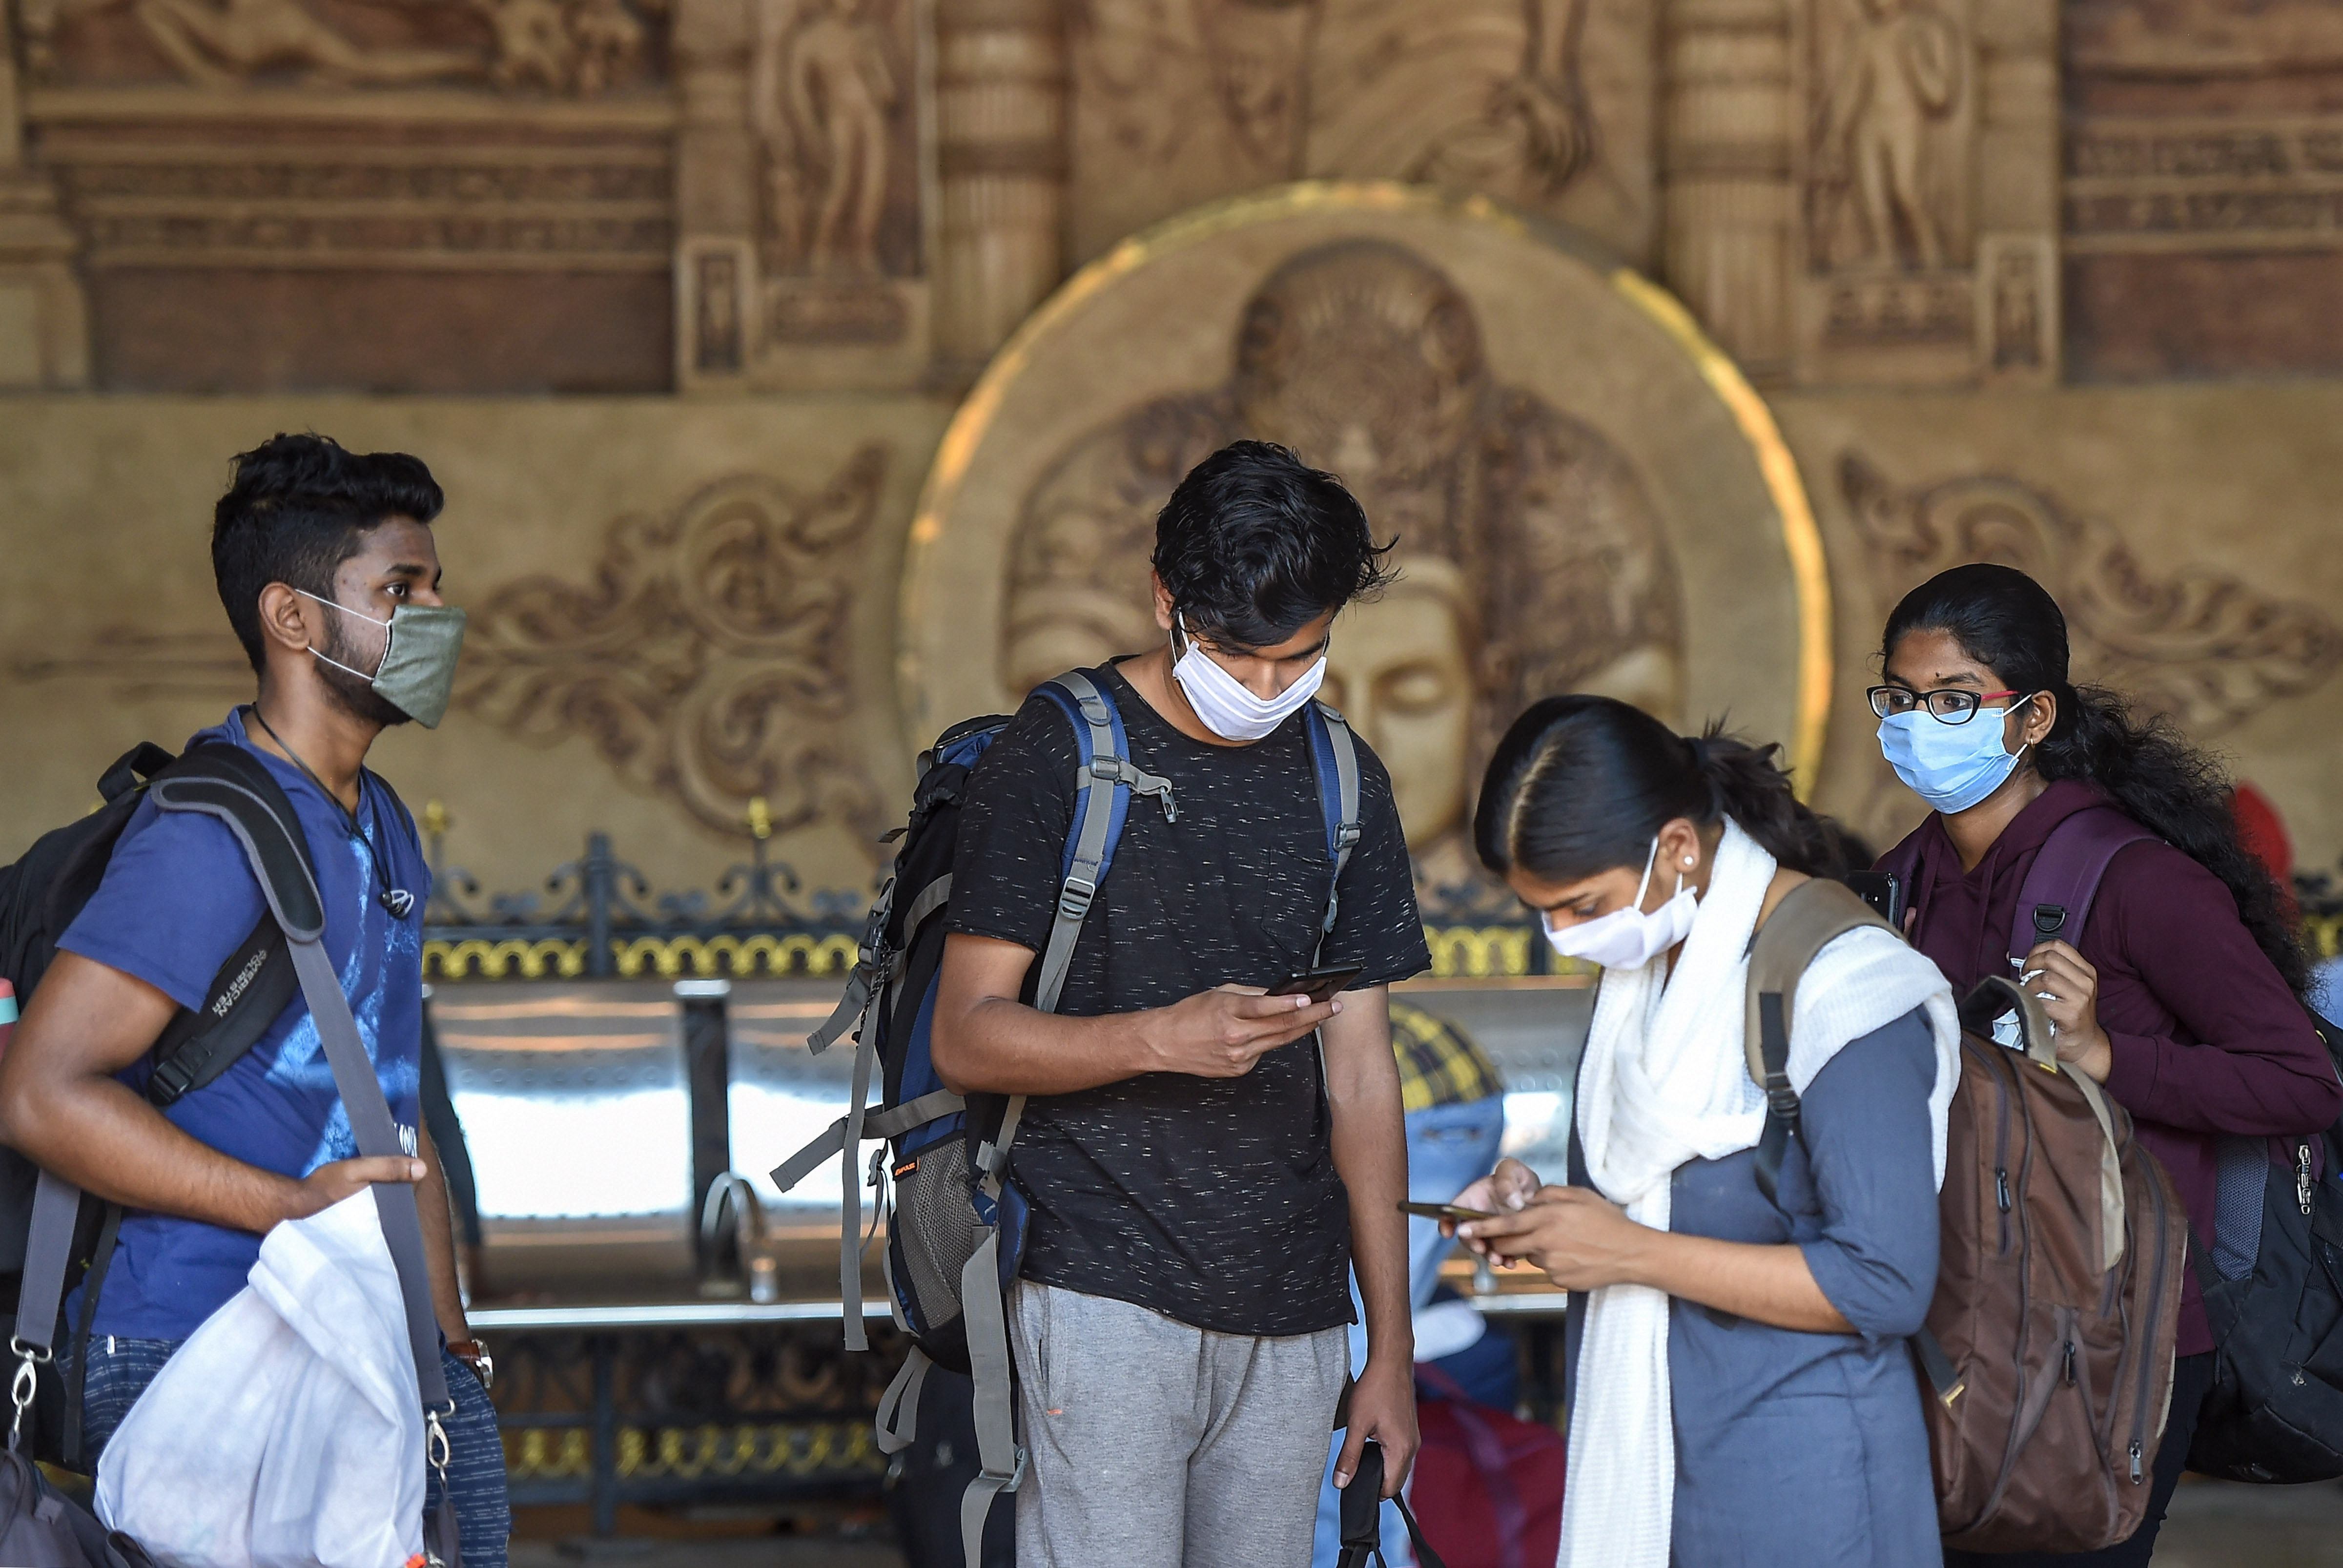 Passengers wear masks as a preventive measure against coronavirus, at Lokmanya Tilak Terminus in Mumbai, Tuesday, March 17, 2020